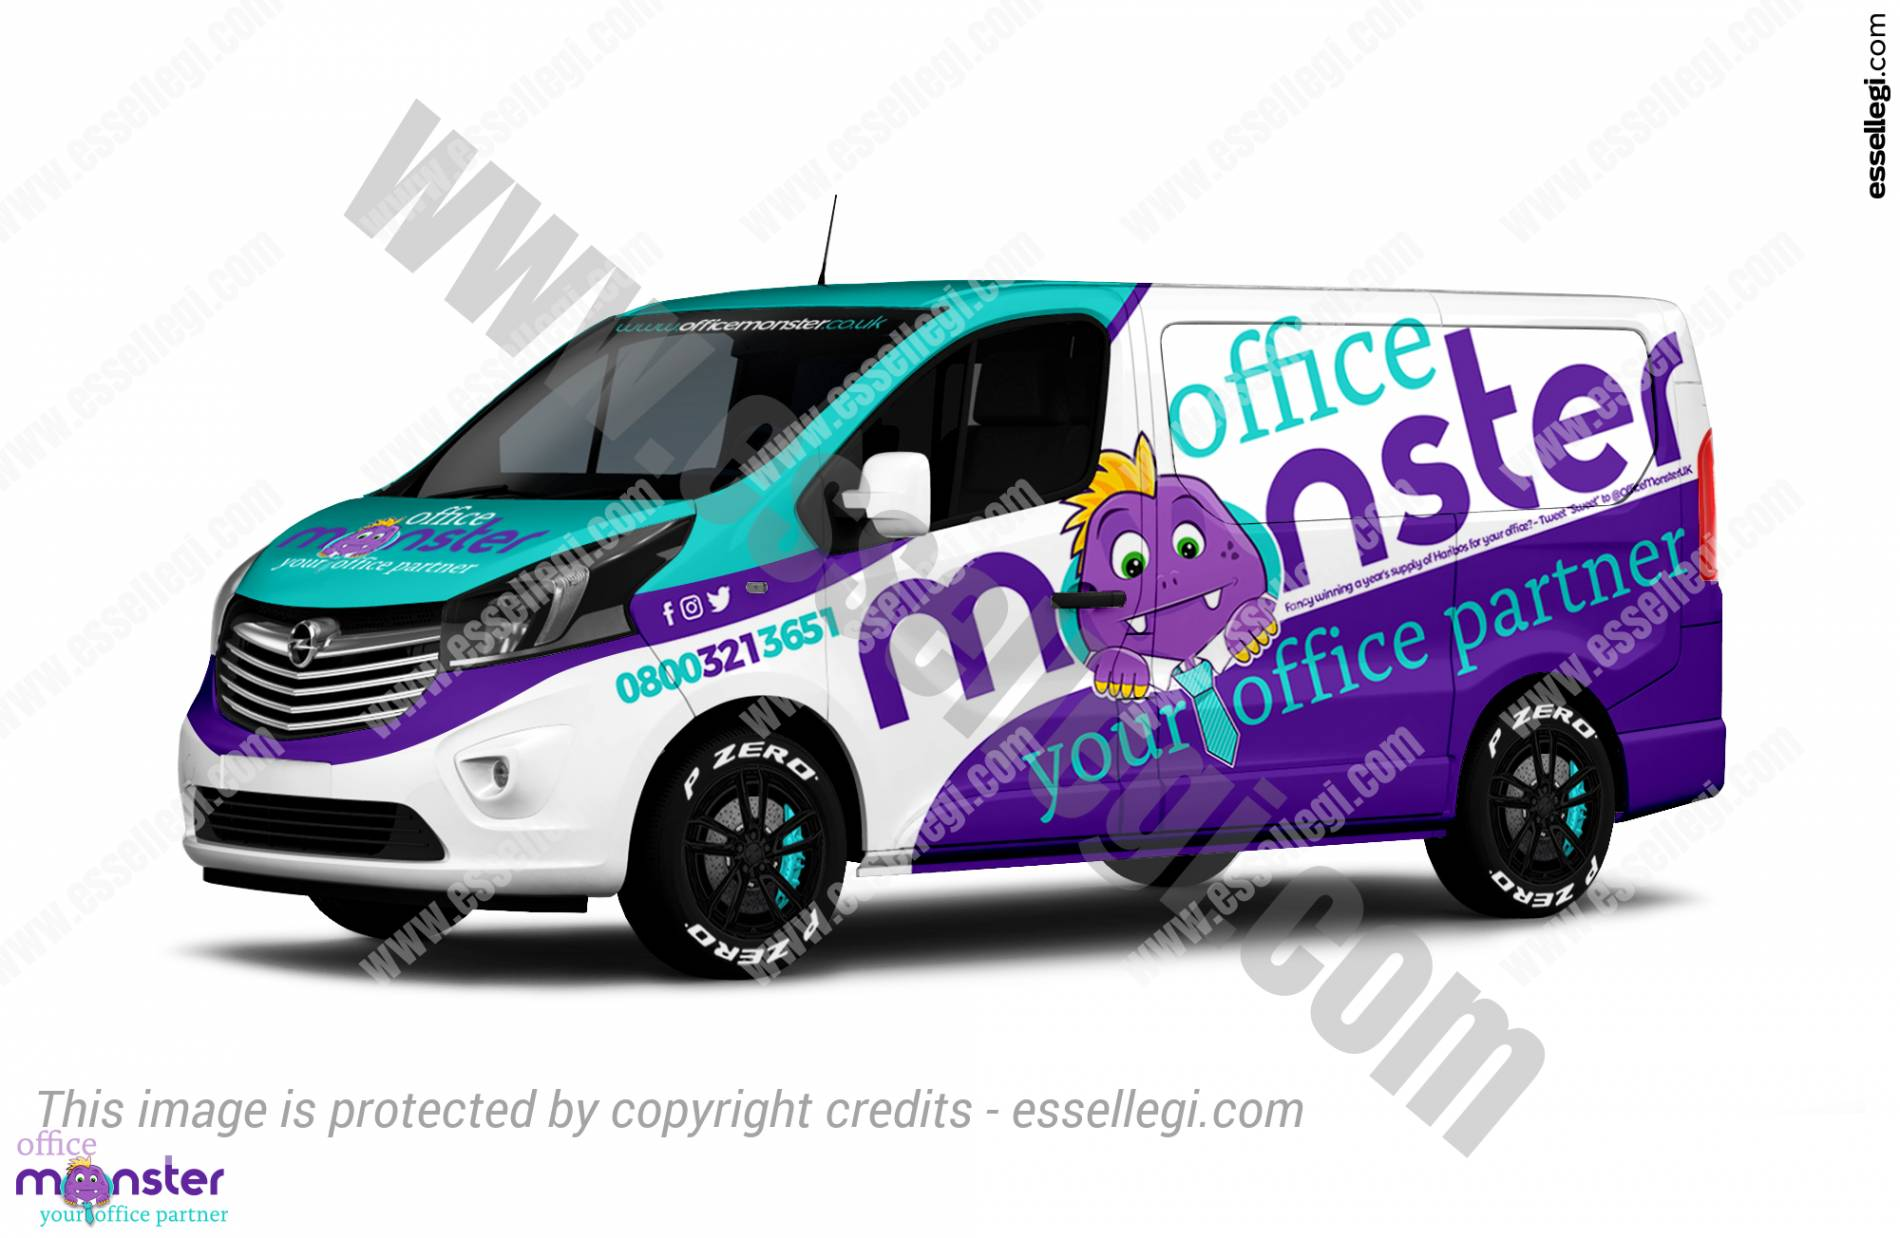 Vauxhall Vivaro Wrap Design. Vauxhall | Van Wrap Design by Essellegi. Van Signs, Van Signage, Van Wrapping, Van Signwriting, Van Wrap Designer, Signs for Van, Van Logo, Van Graphic by Essellegi.